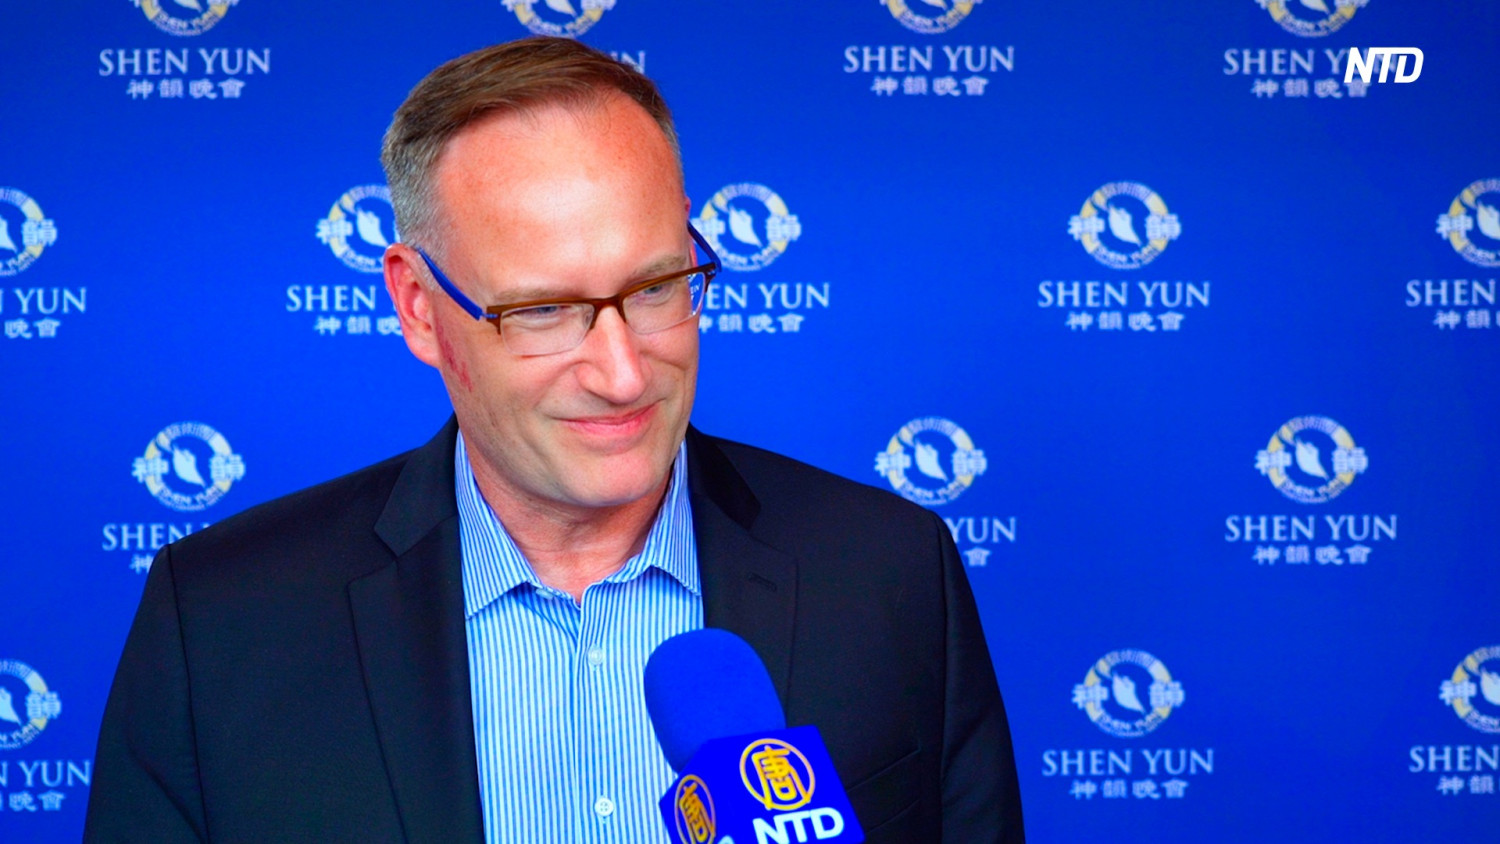 College Dean Says Shen Yun Can Rejuvenate the Spirit